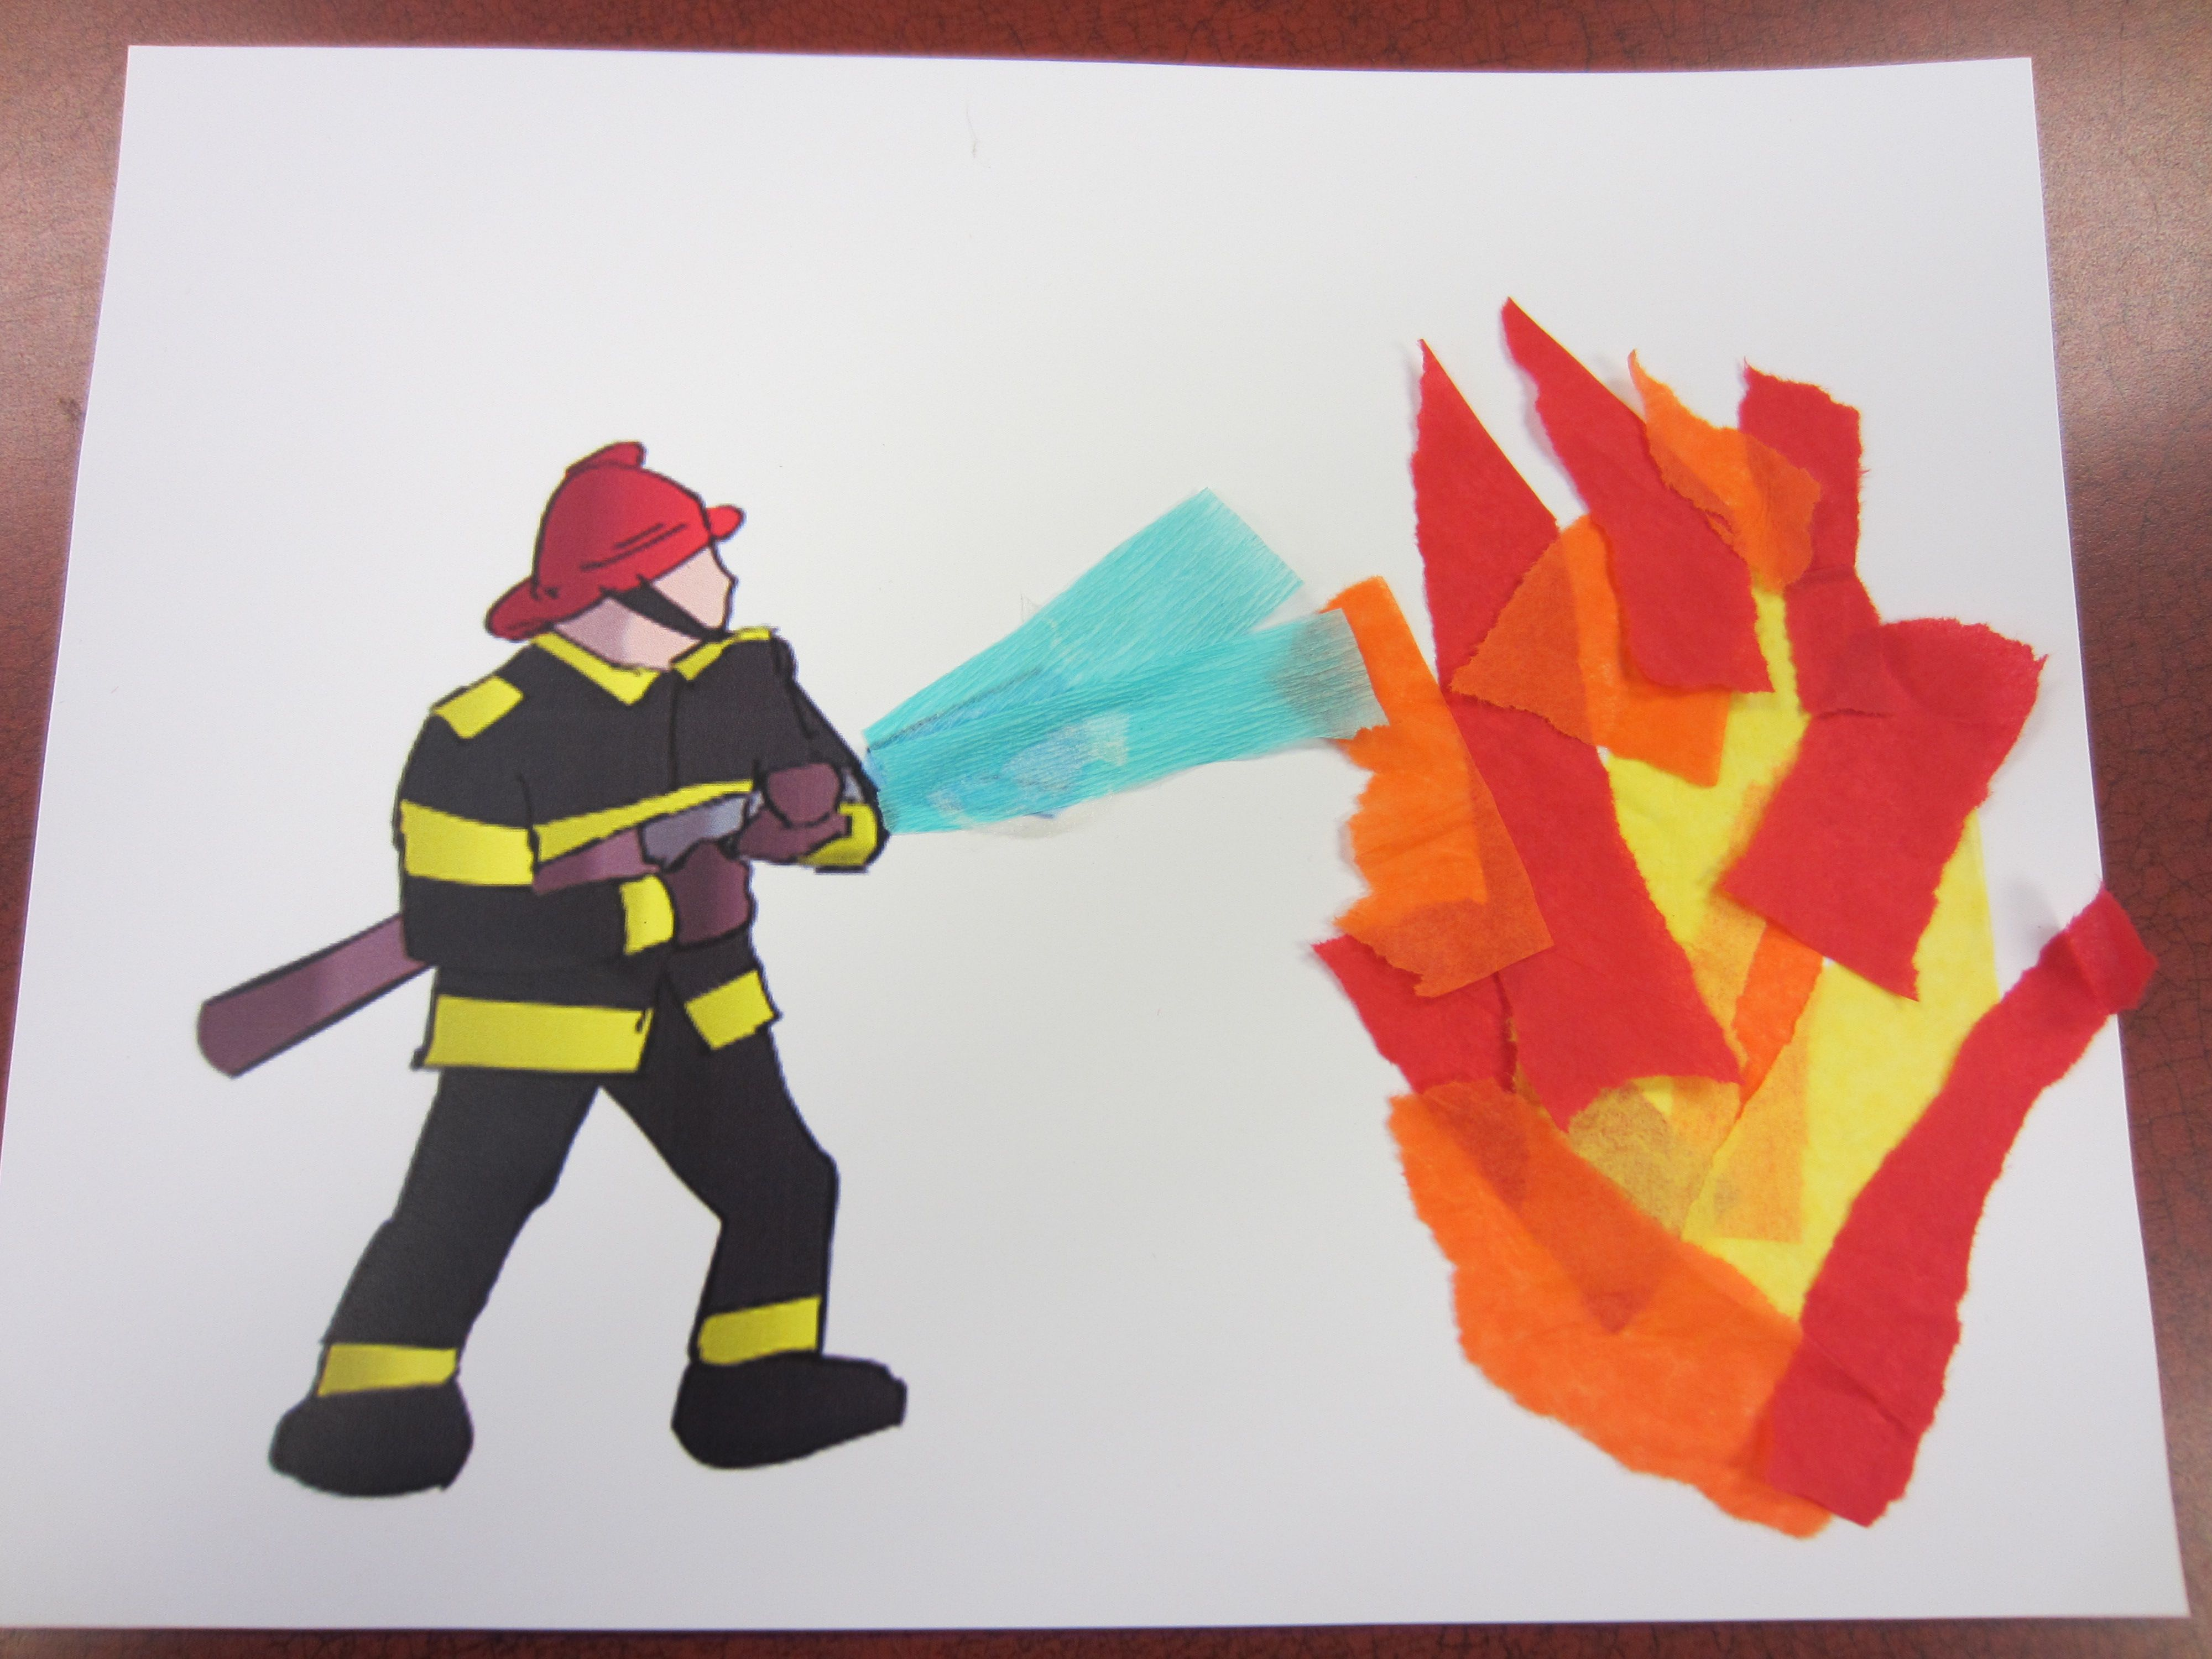 Whats the best way to make a paper turkey look like a fireman?